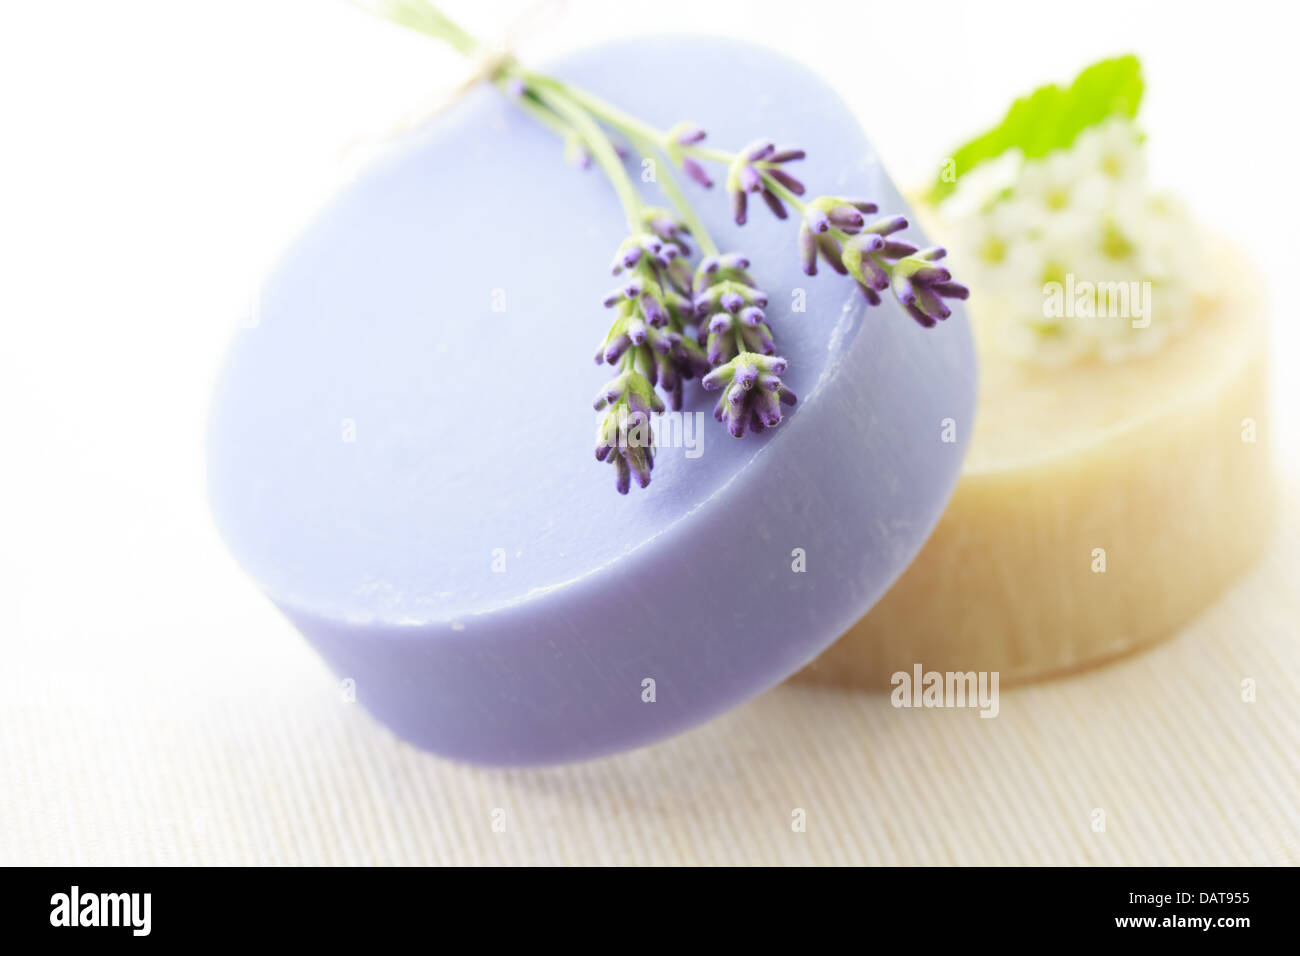 Handmade soap with fresh lavenders and white flowers - Stock Image